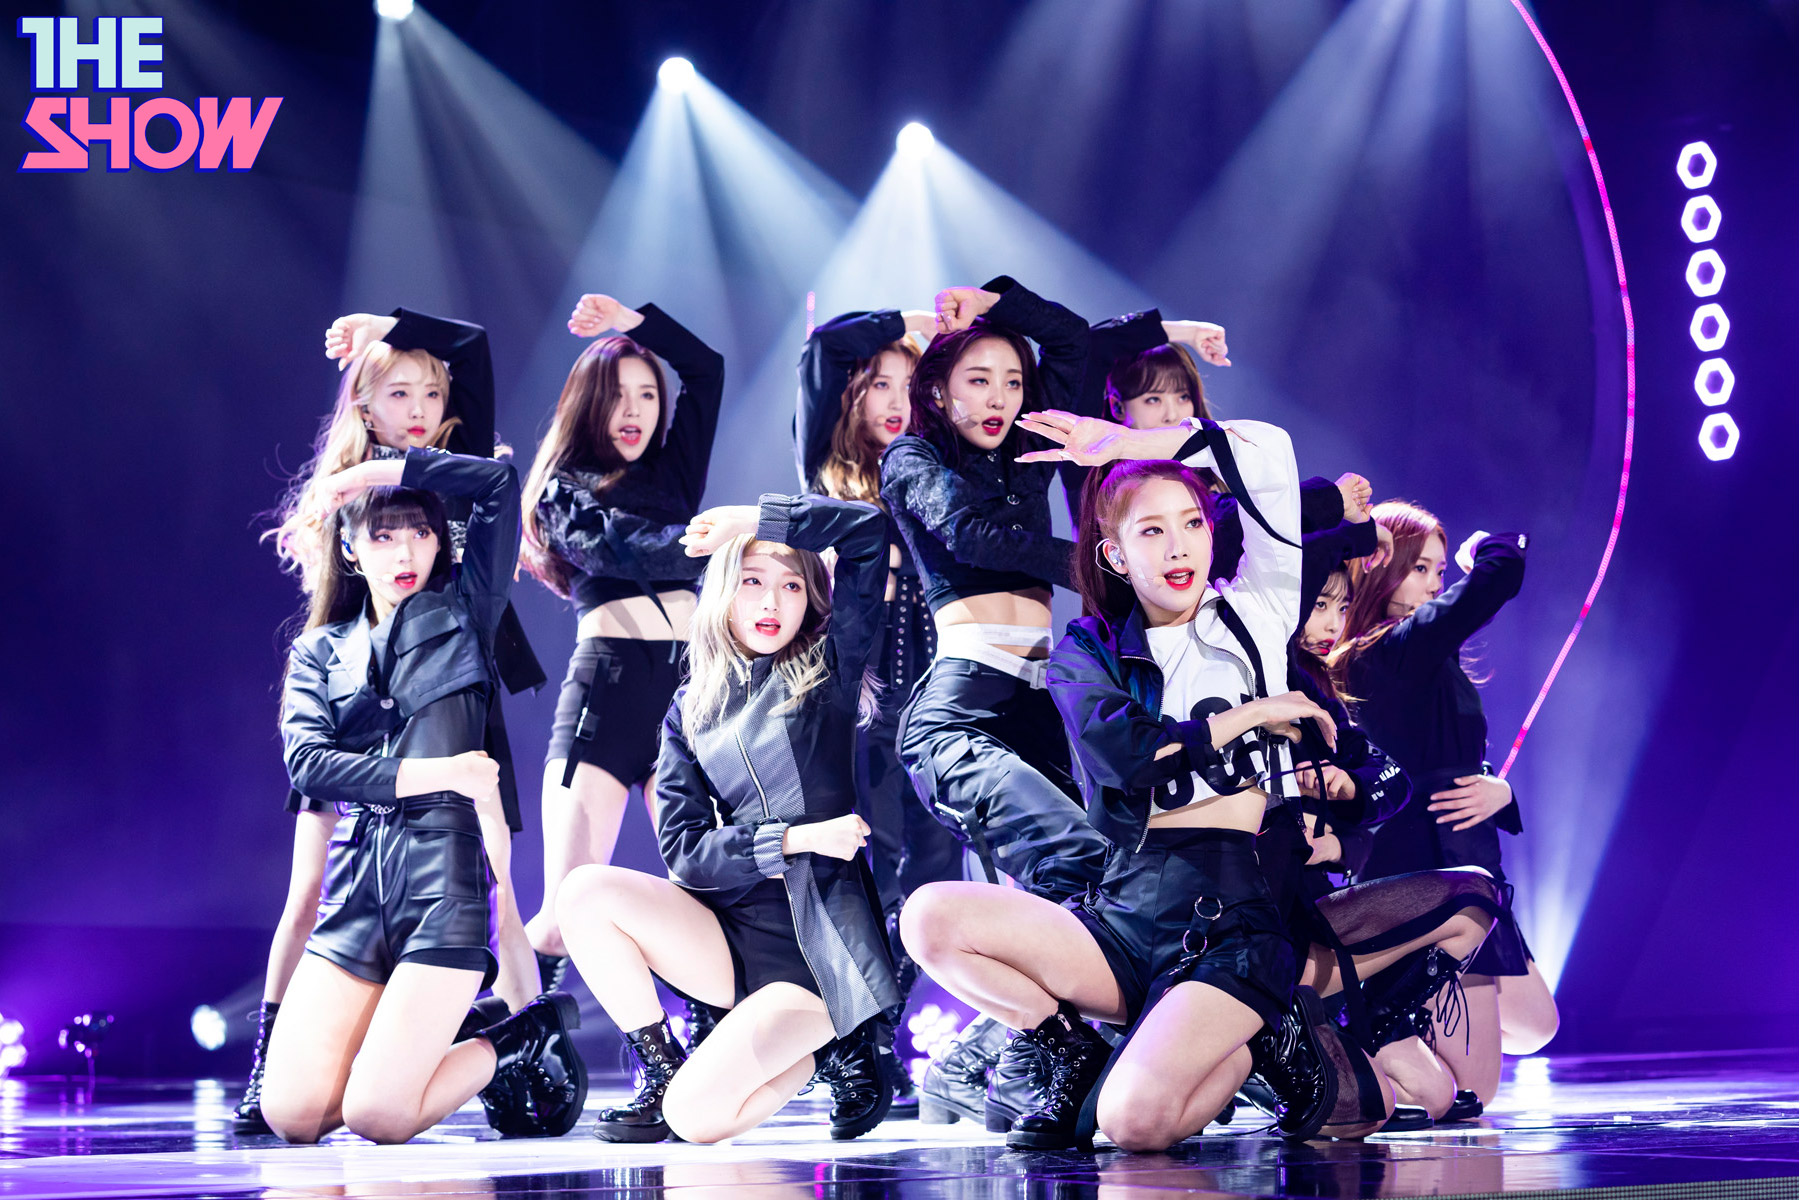 200212 THE SHOW Stage So What LOONA 6.jpg